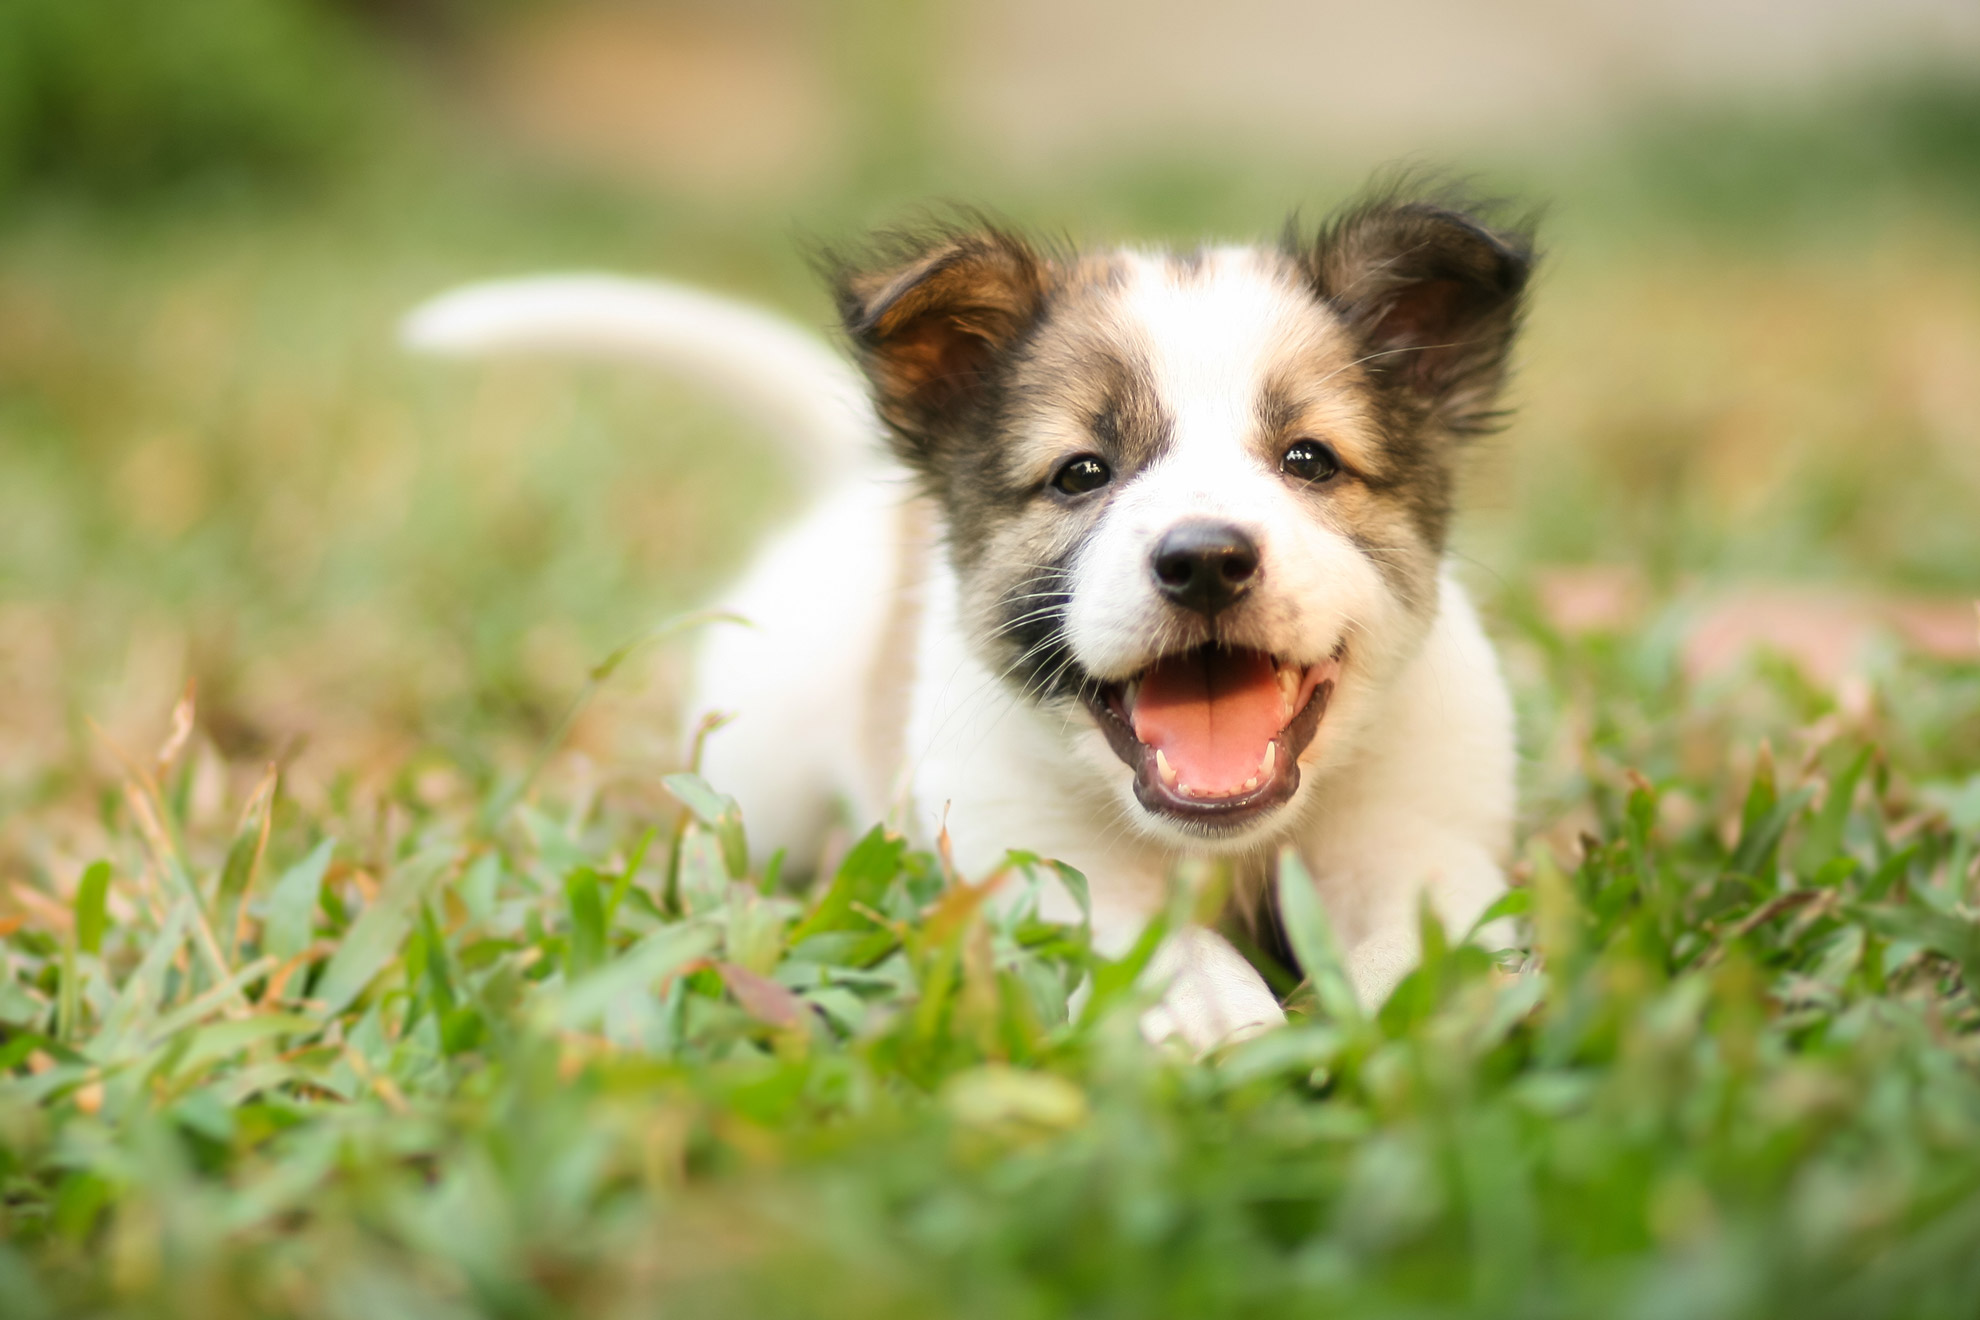 Small puppy running in the grass